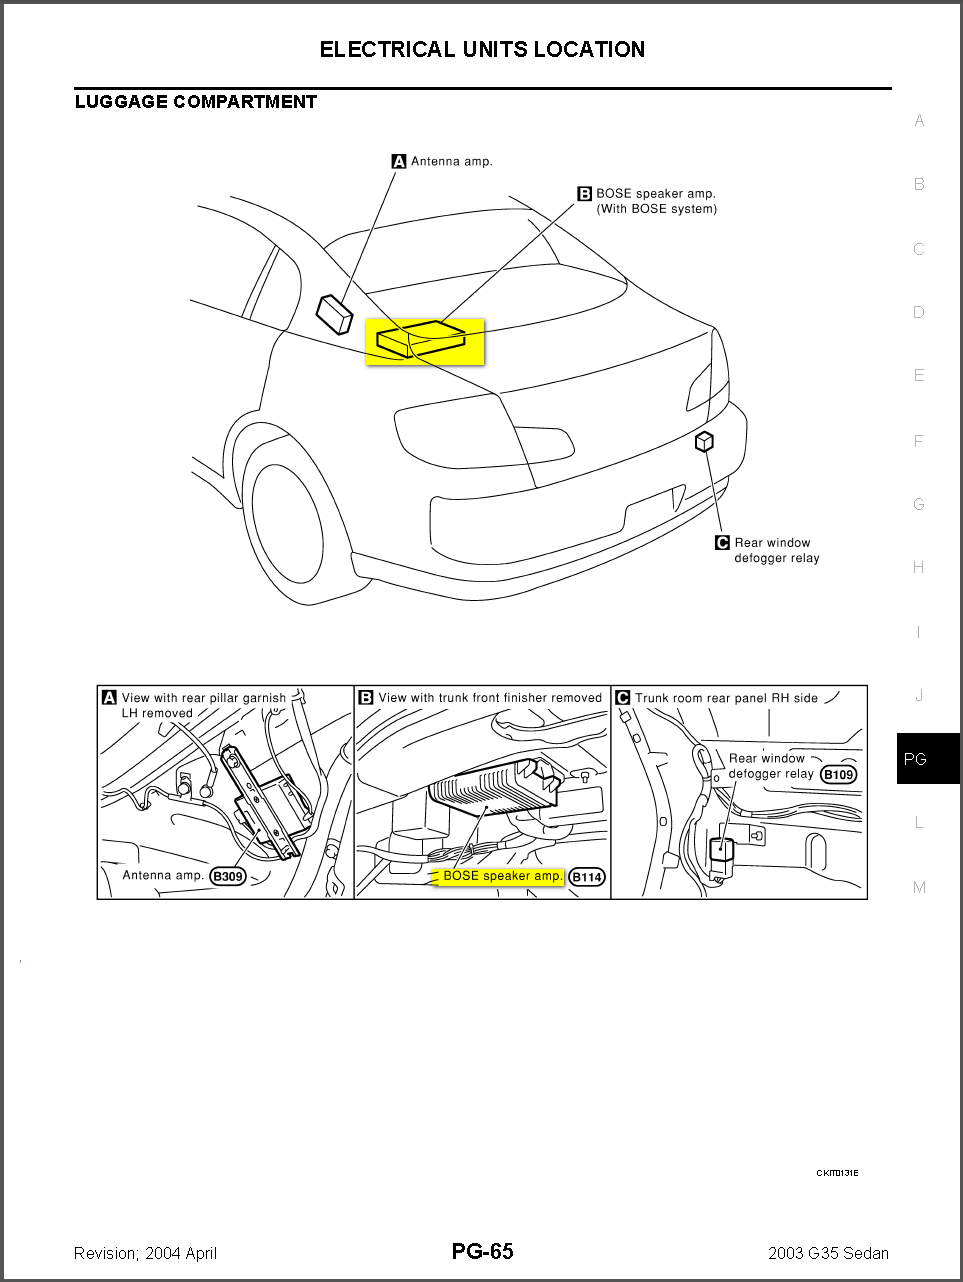 03 G35 Wiring Diagrams Diagram Will Be A Thing Infinity Schematics 2003 Infiniti Coupe Trunk 44 Body Kits